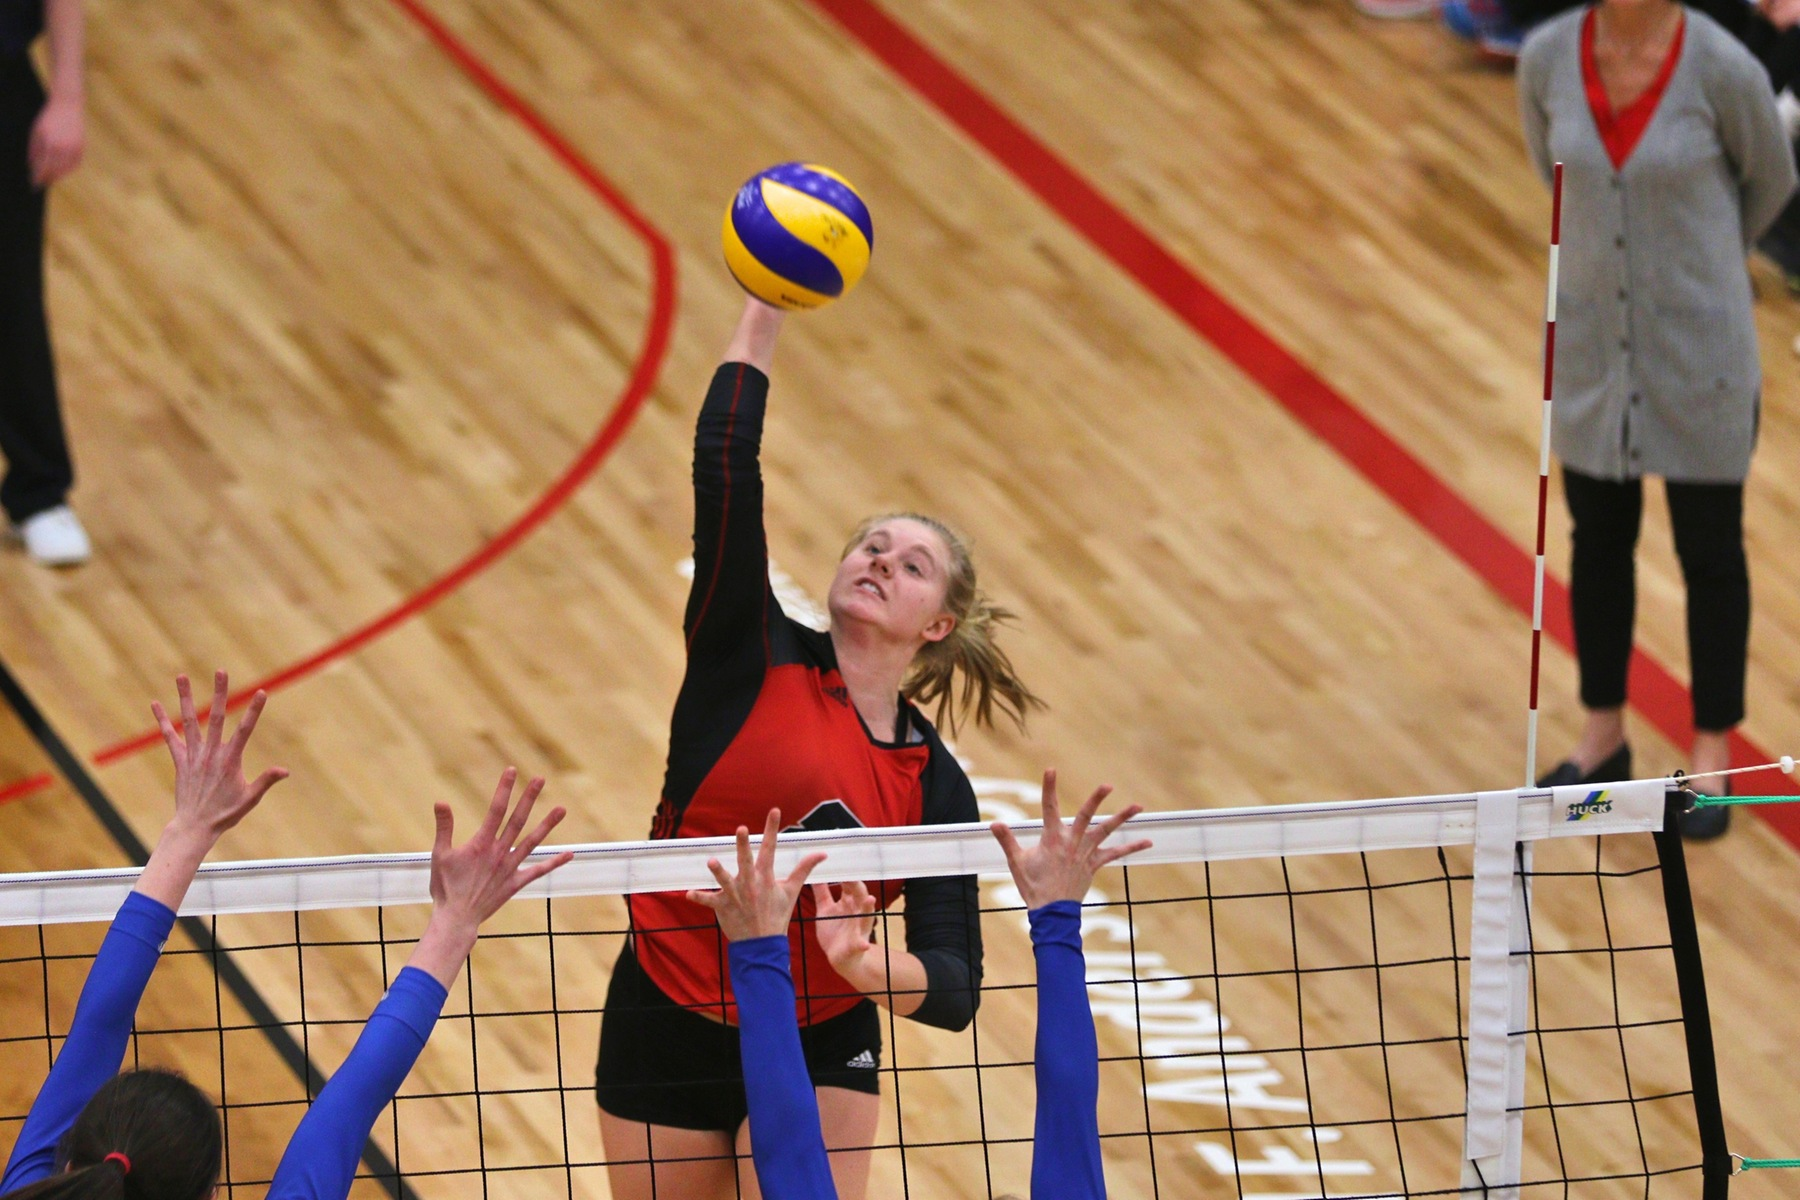 Ashleigh Laube had eight kills and tied for a team-high with 10 digs to lead the Wesmen in a straight-sets loss to UBC Friday night. (David Larkins/Wesmen Athletics)